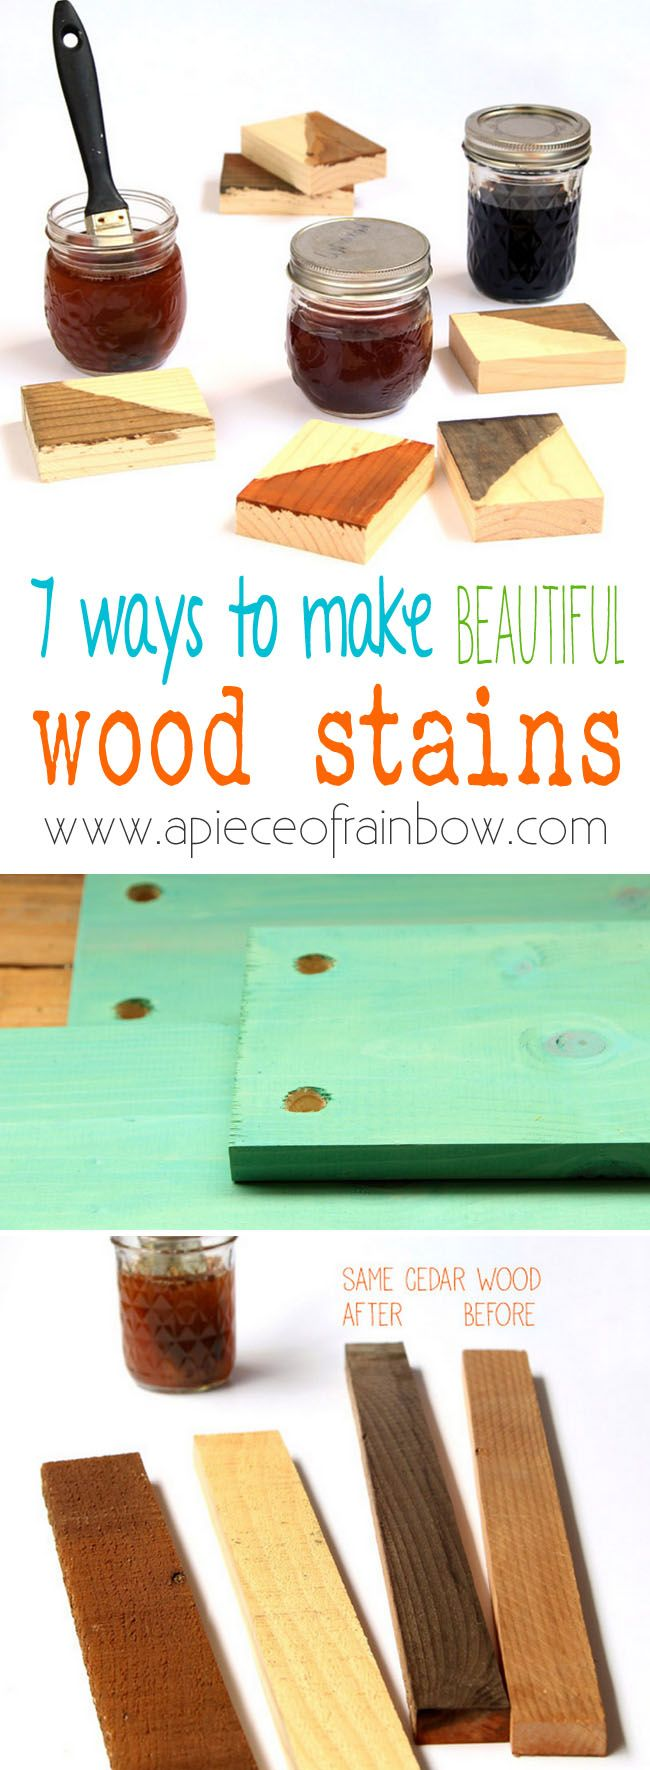 Made from all natural household materials, these quick and easy wood stains are super effective, long lasting, and low cost (like 10% of those in the store)! And they are non-toxic as well – no solvents and no VOCs !